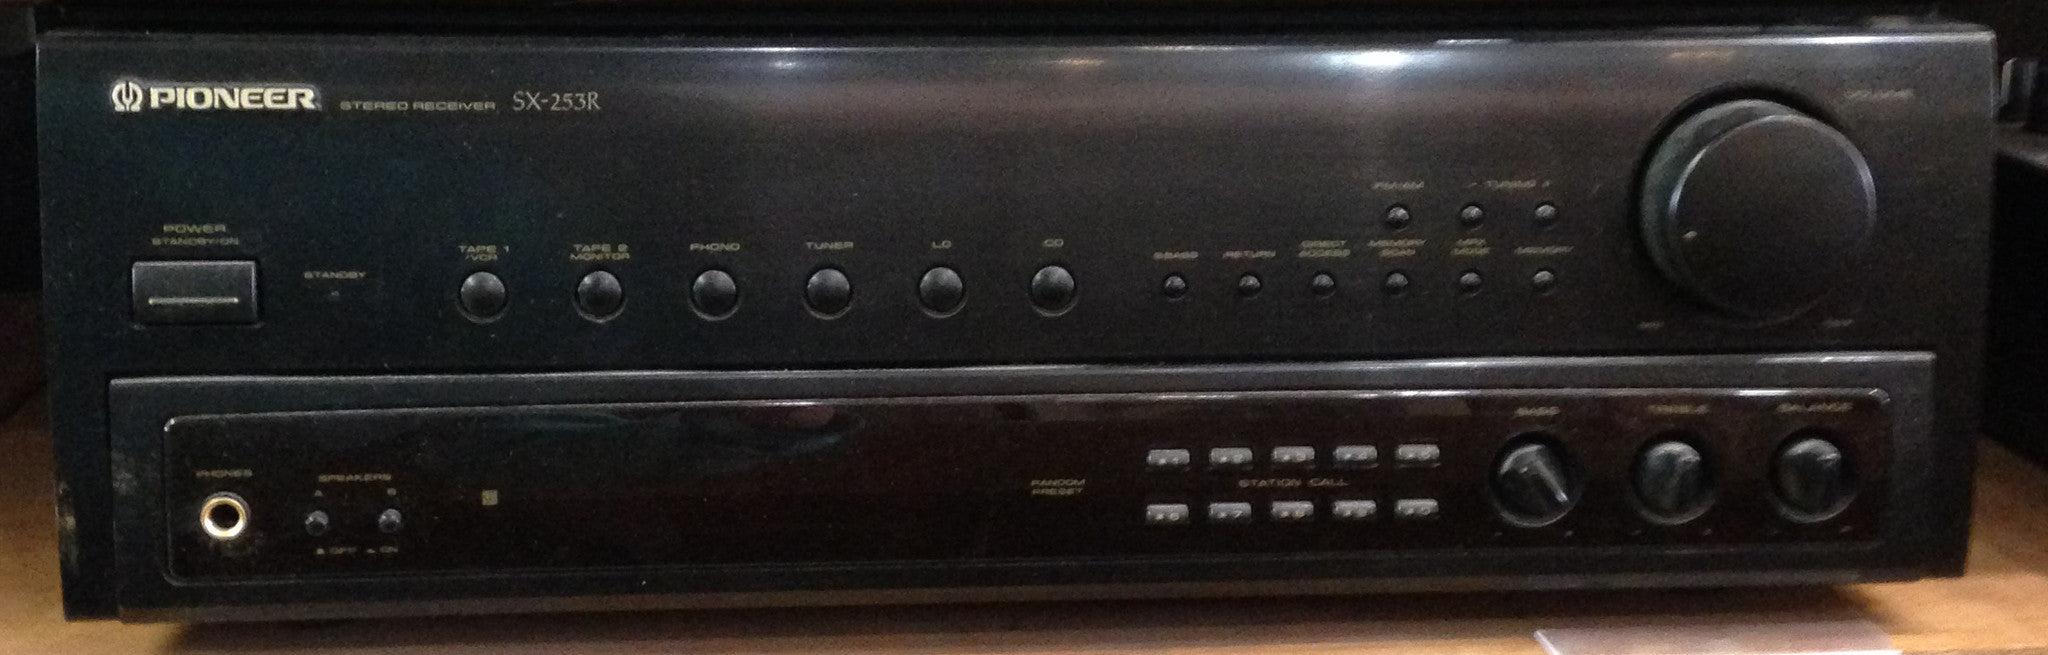 (1995) Japan Made Vintage - Pioneer SX-253r AM/FM Stereo Receiver